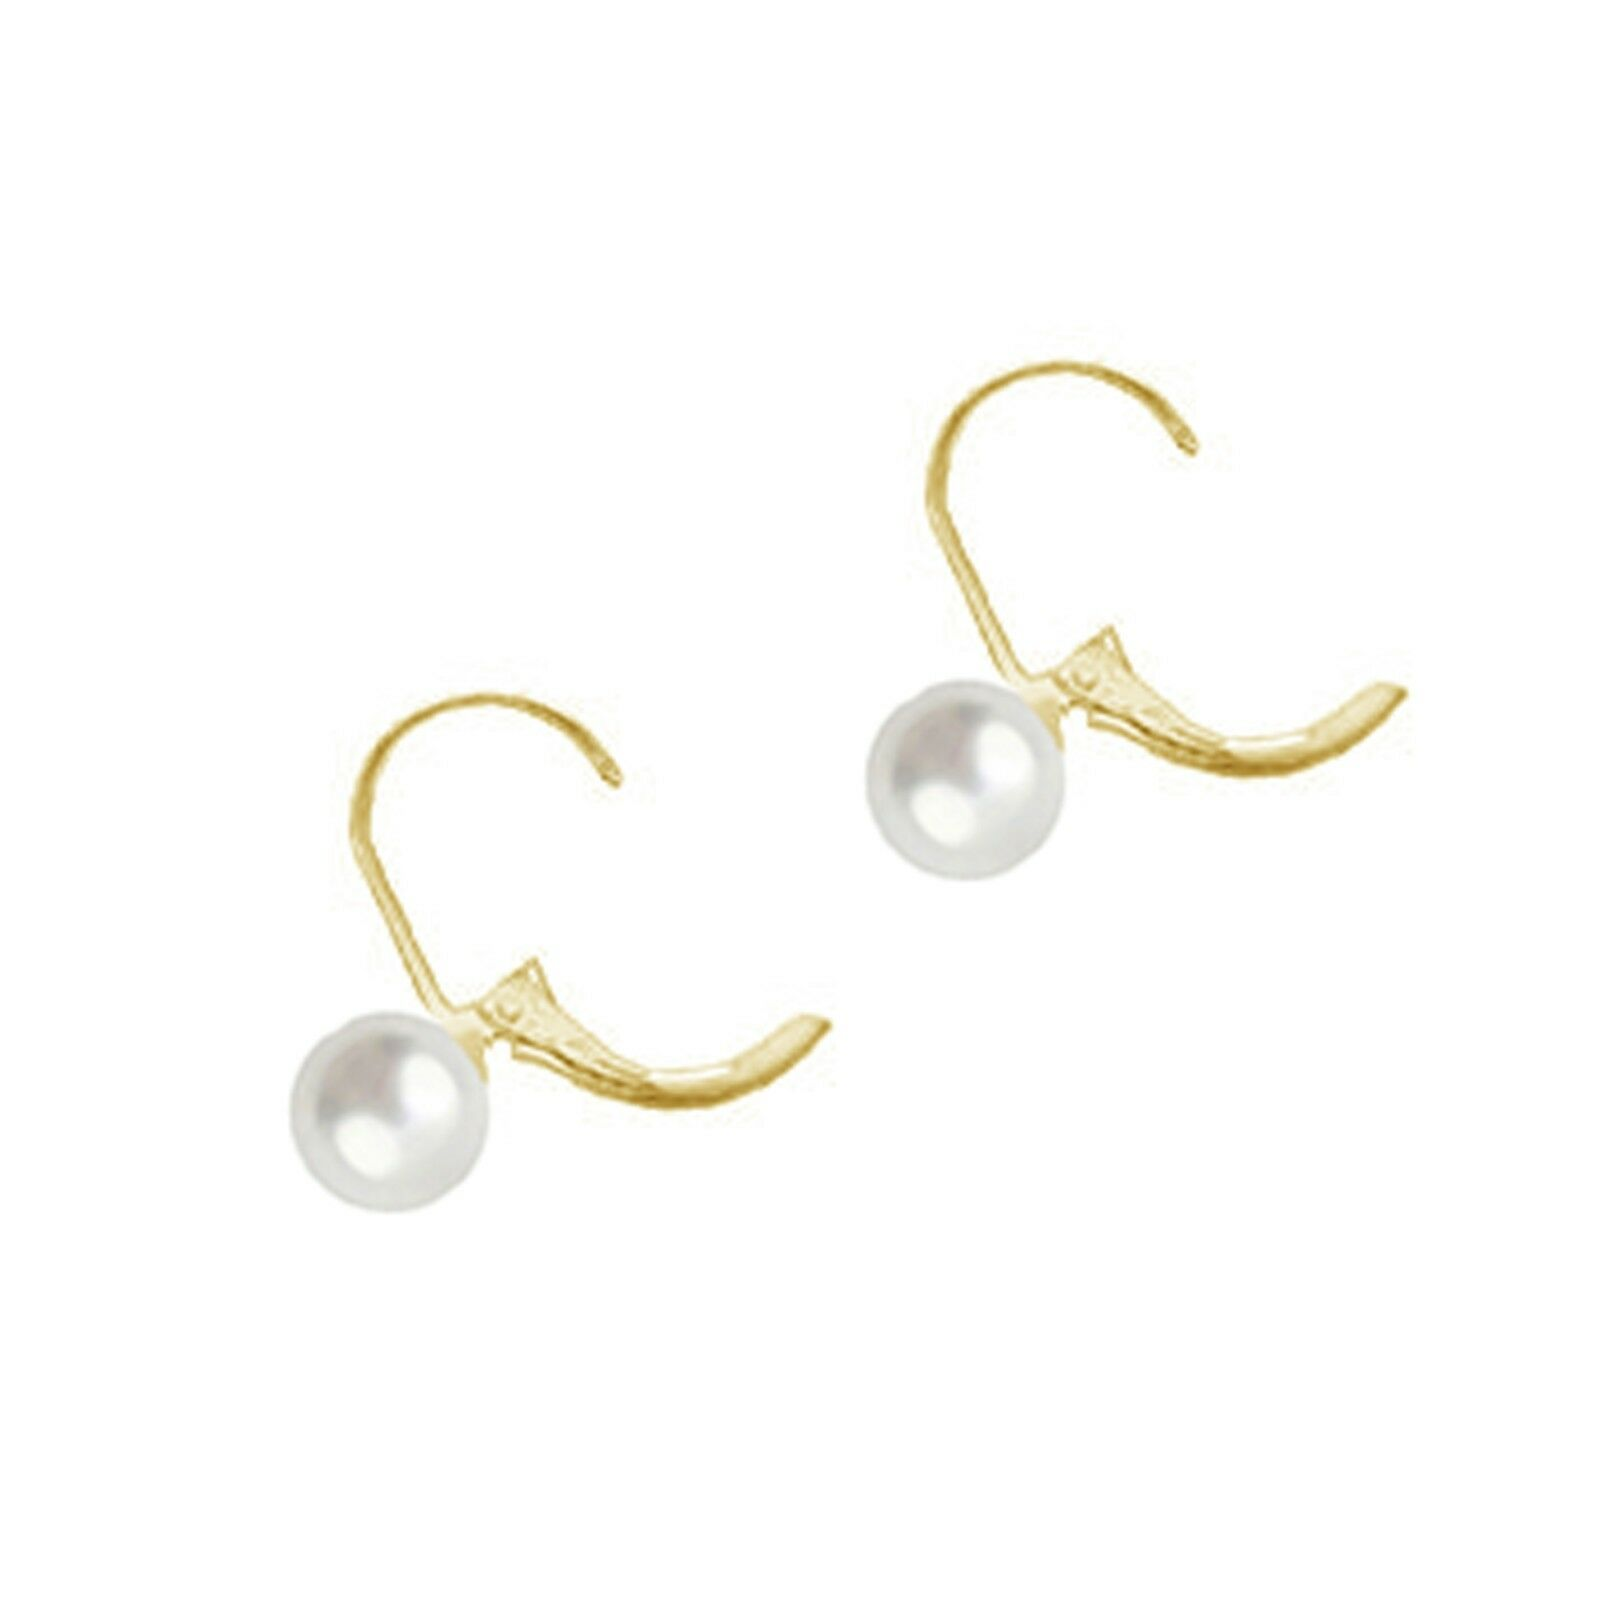 14K Gold Fresh Water Cultured Pearl Lever Back Earrings 5mm